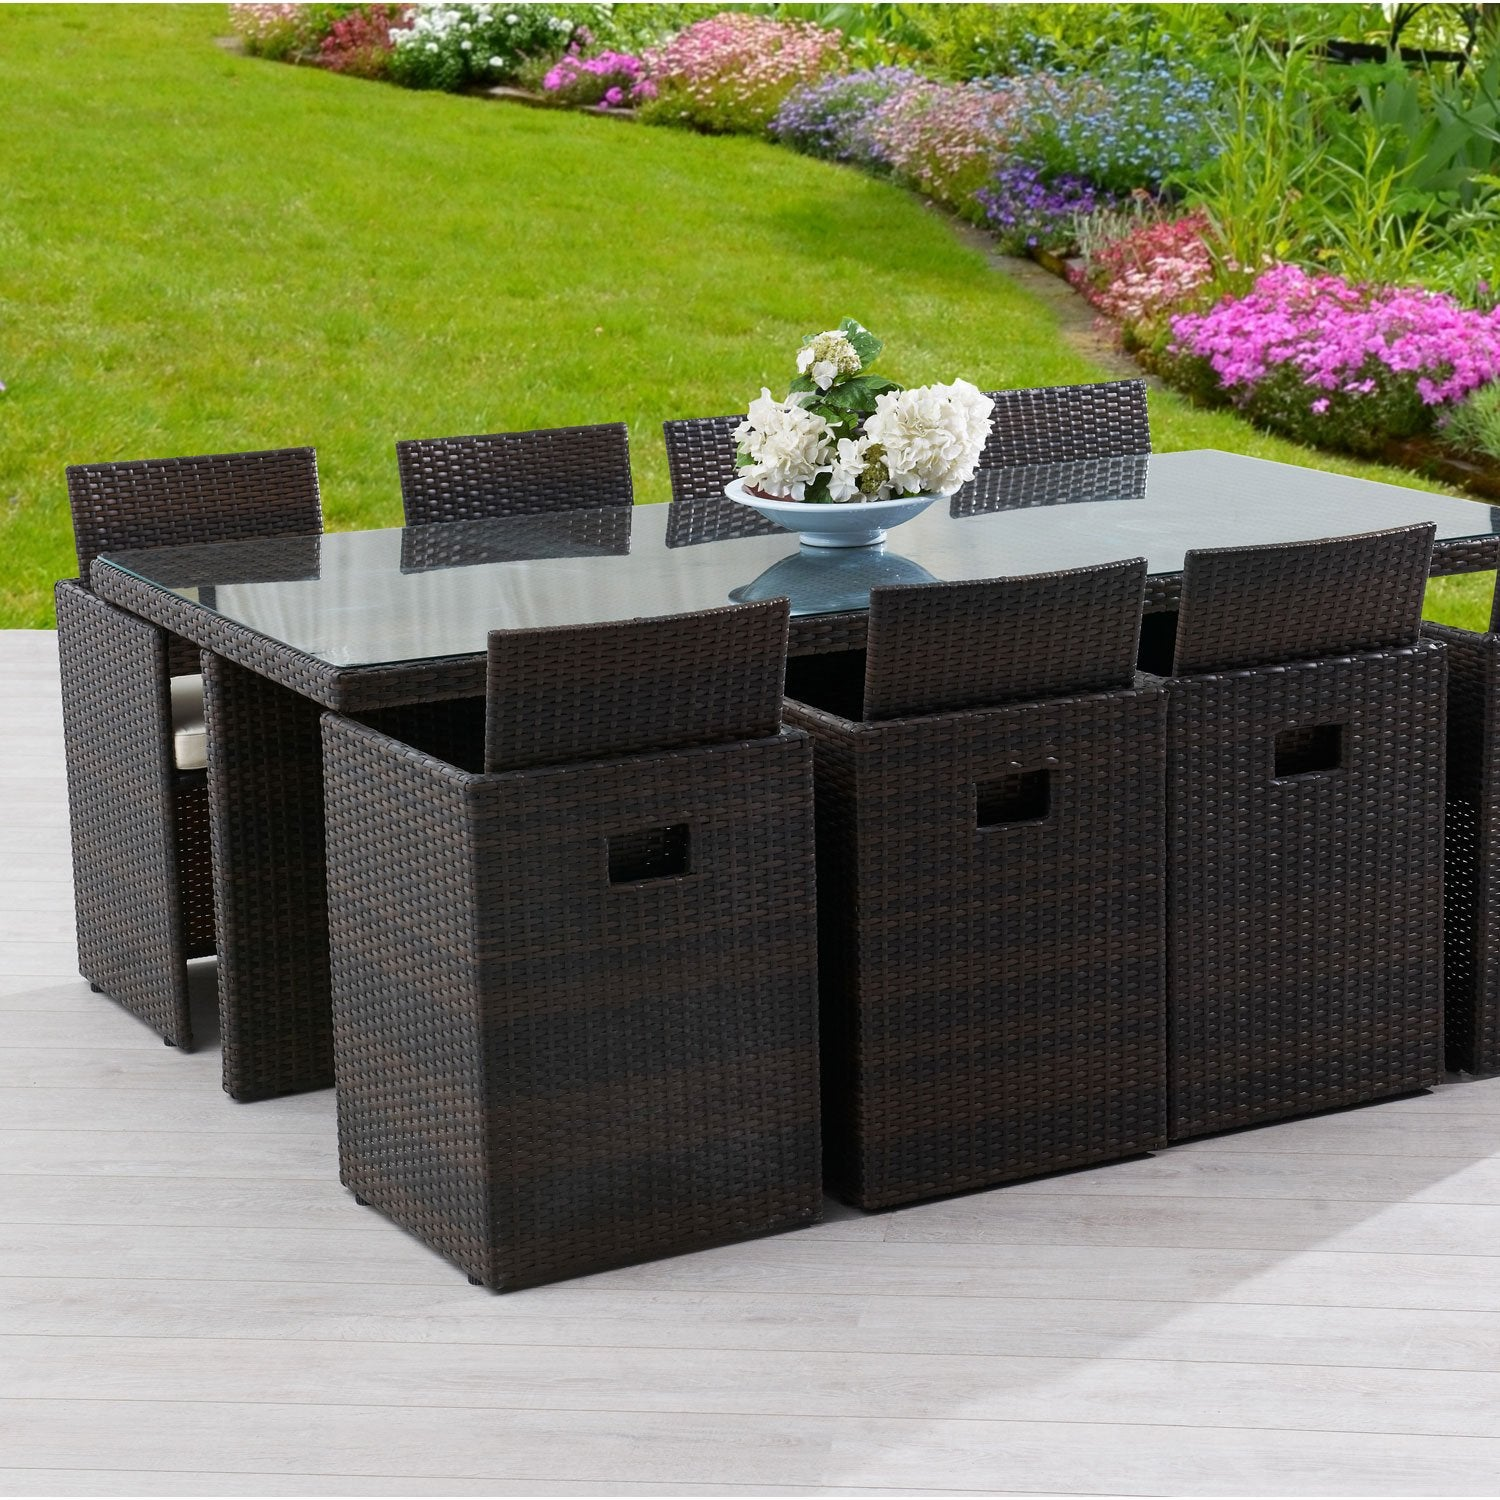 Salon de jardin encastrable r sine tress e marron 1 table for Plan pour table de jardin